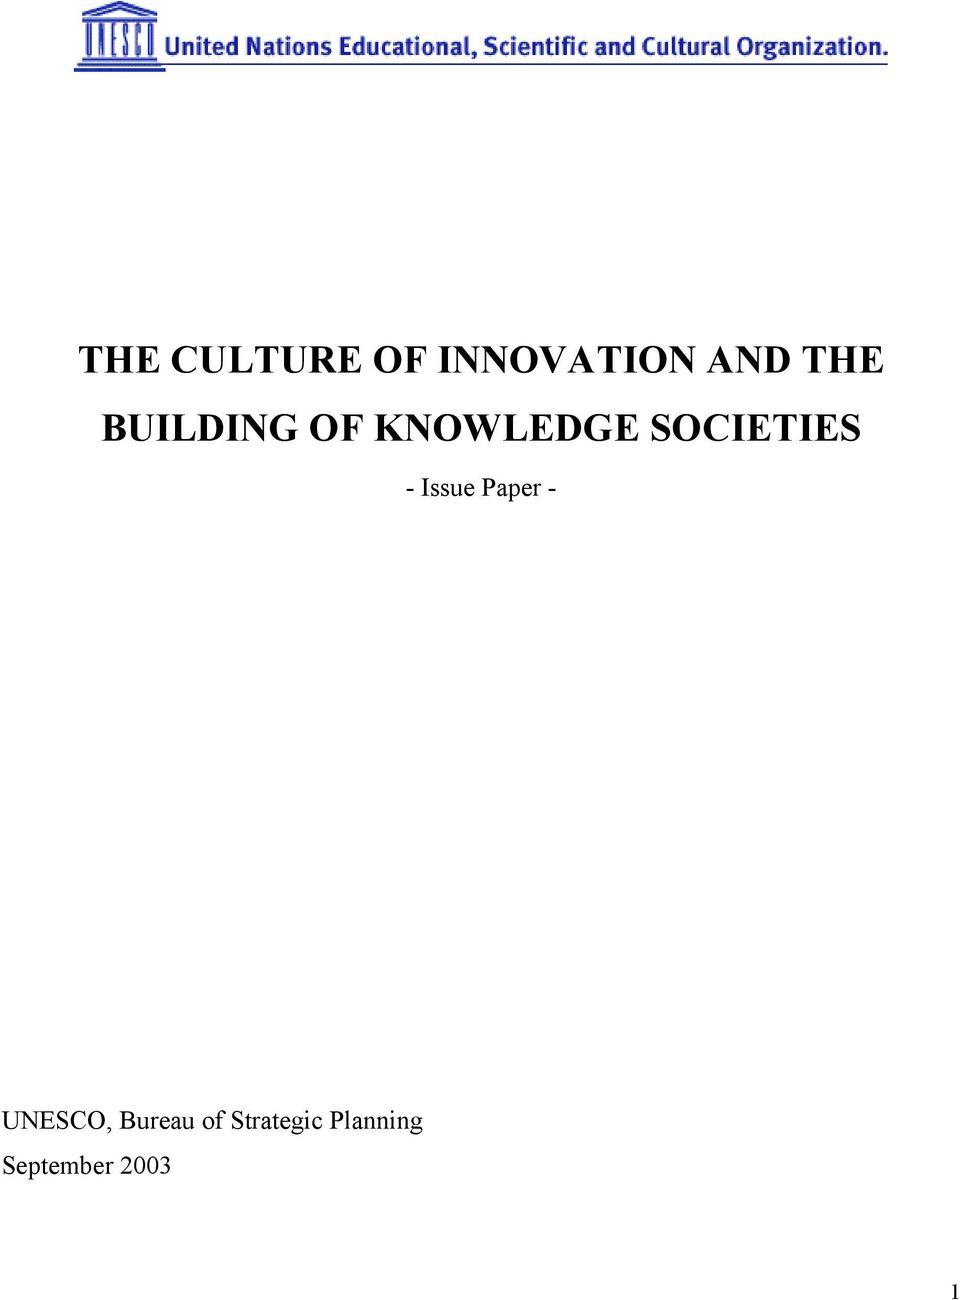 Issue Paper - UNESCO, Bureau of